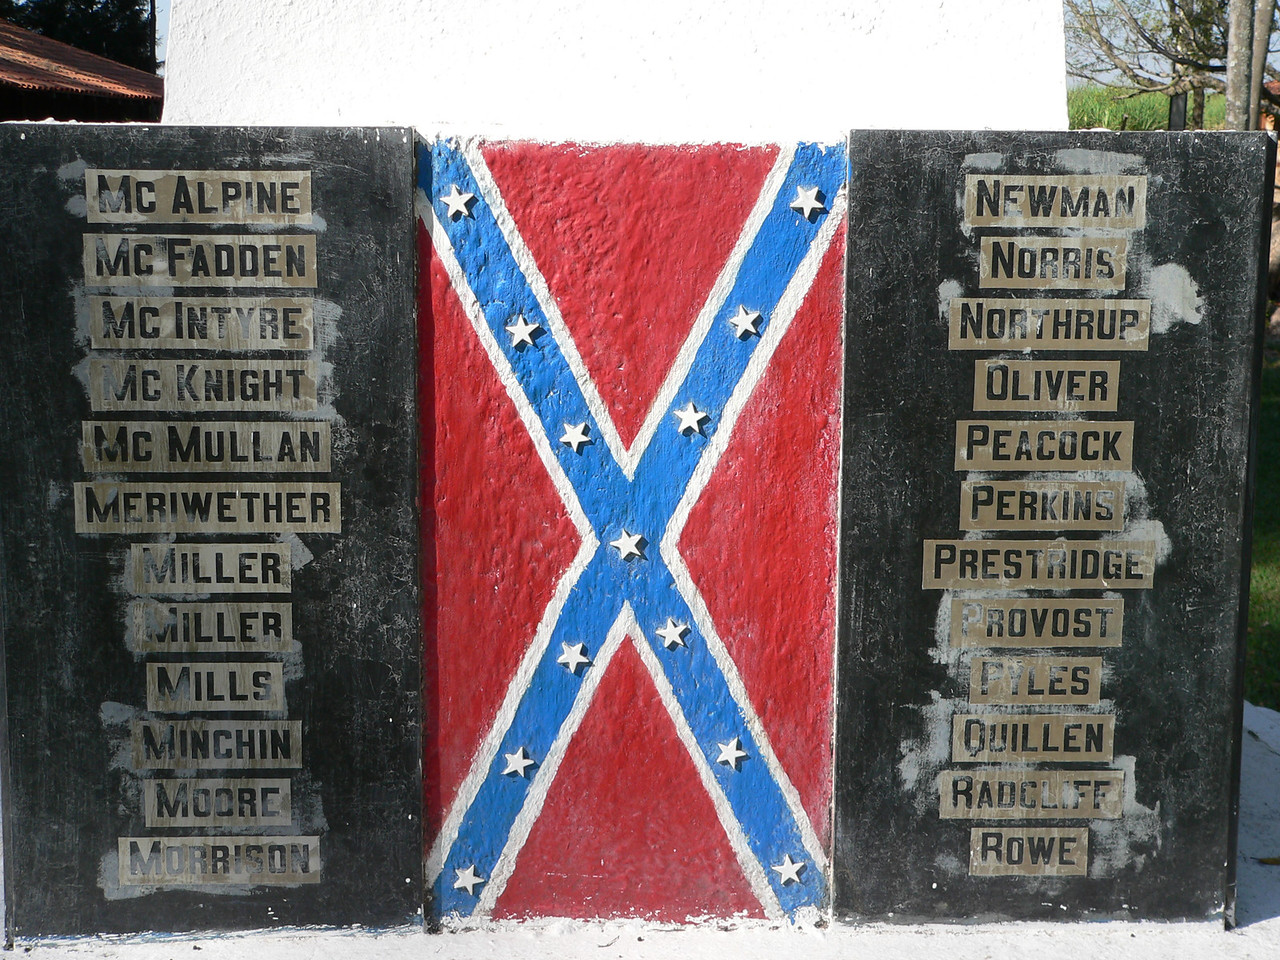 More family names. Included is the name of the McNight family, one of whose descendents would write the first comprehensive account of the Os Confederados in Portuguese.